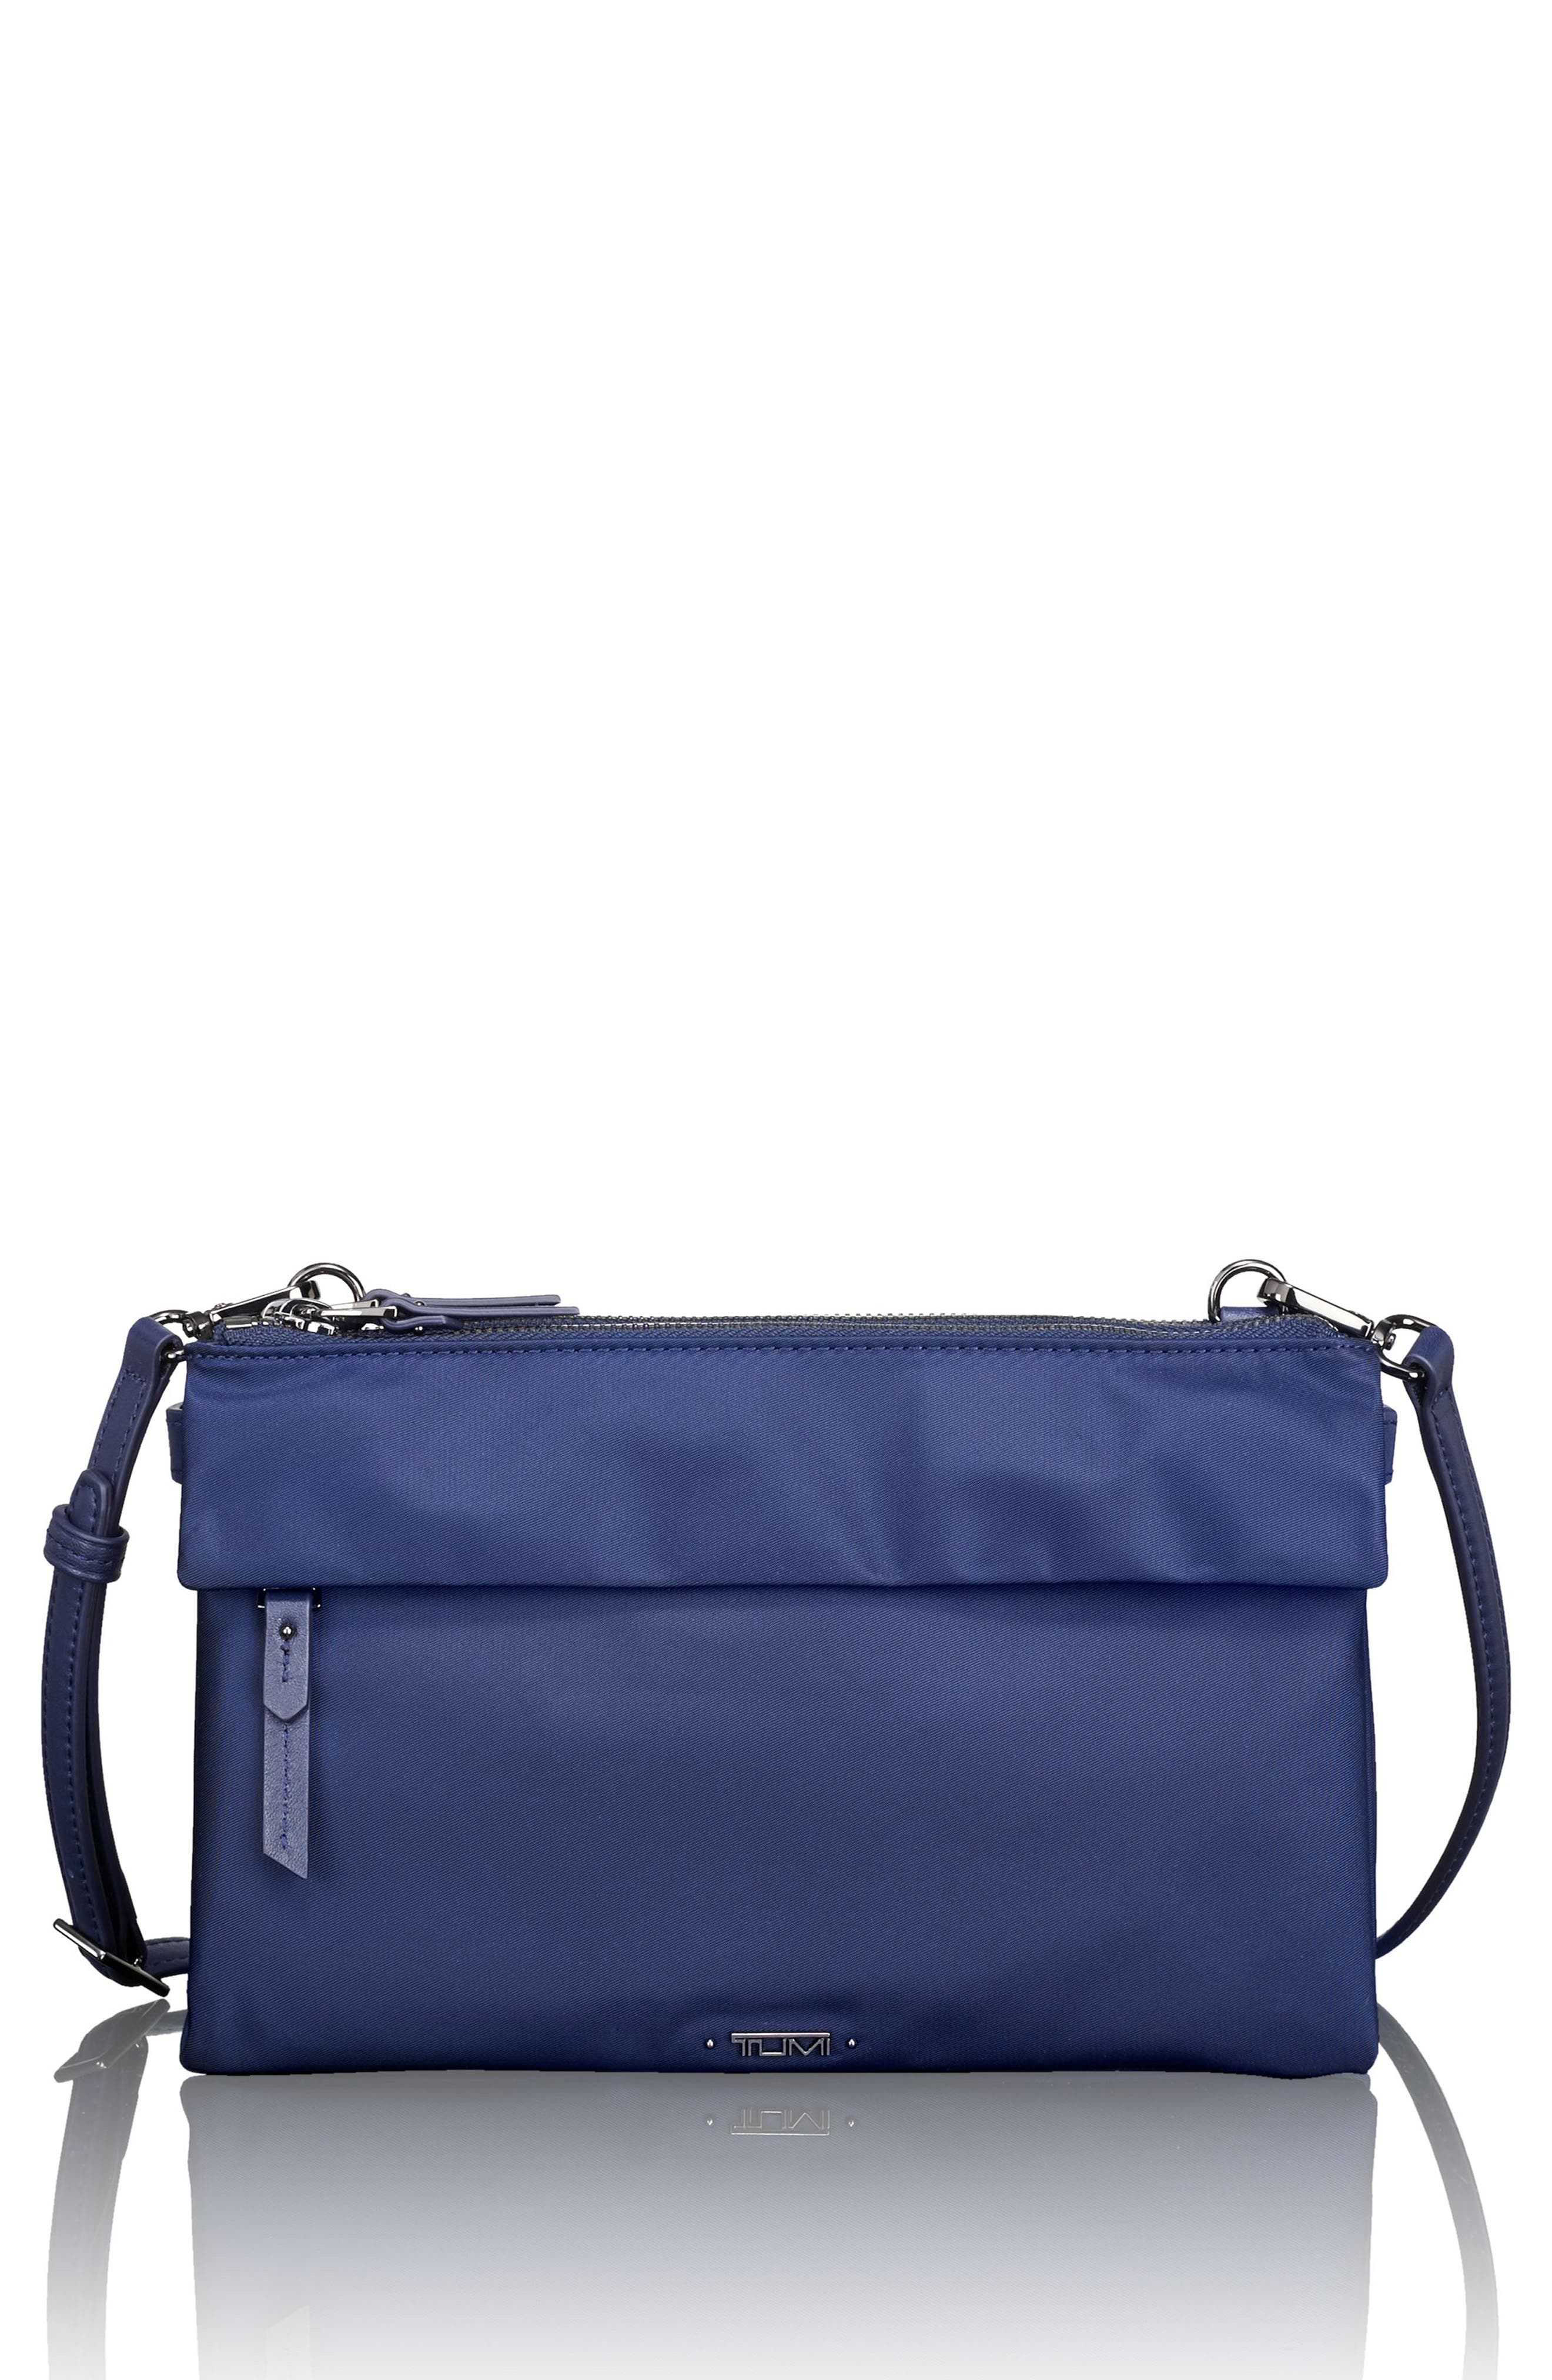 Tumi Voyageur - Tristen Nylon Crossbody Bag